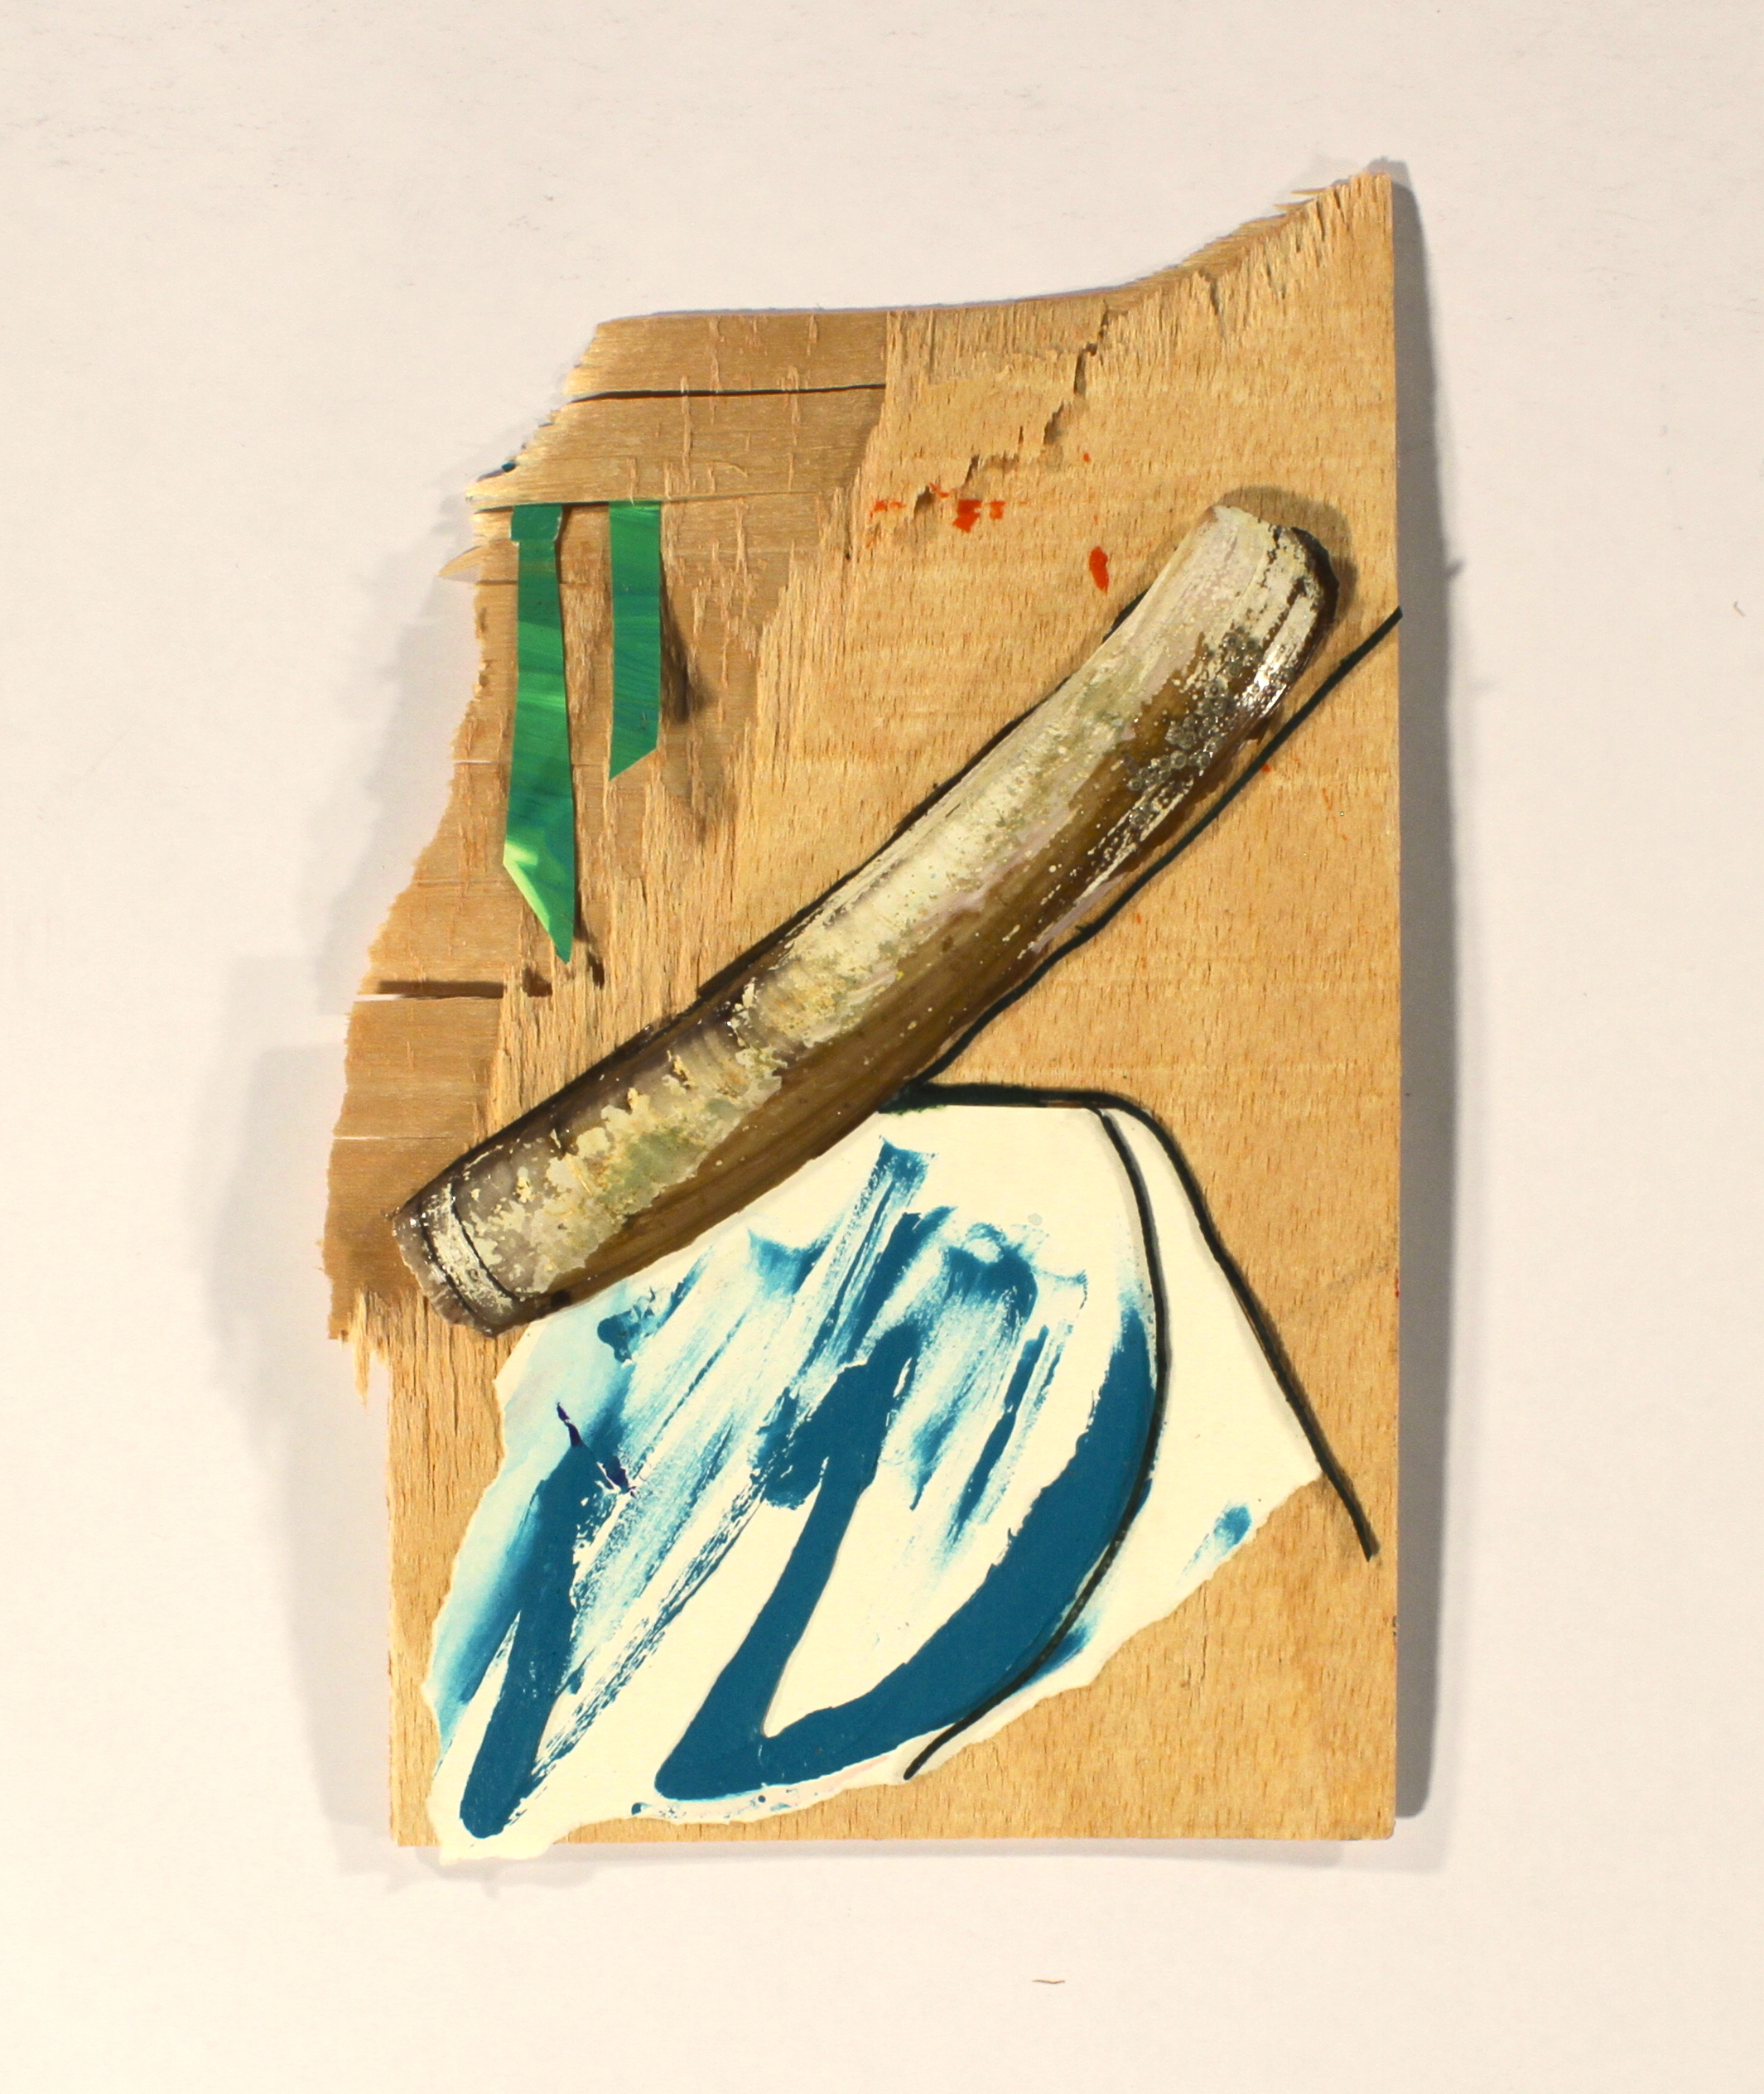 Started By Juan  2014, wood, paper, shell, acrylic, twine, 10in x 7in